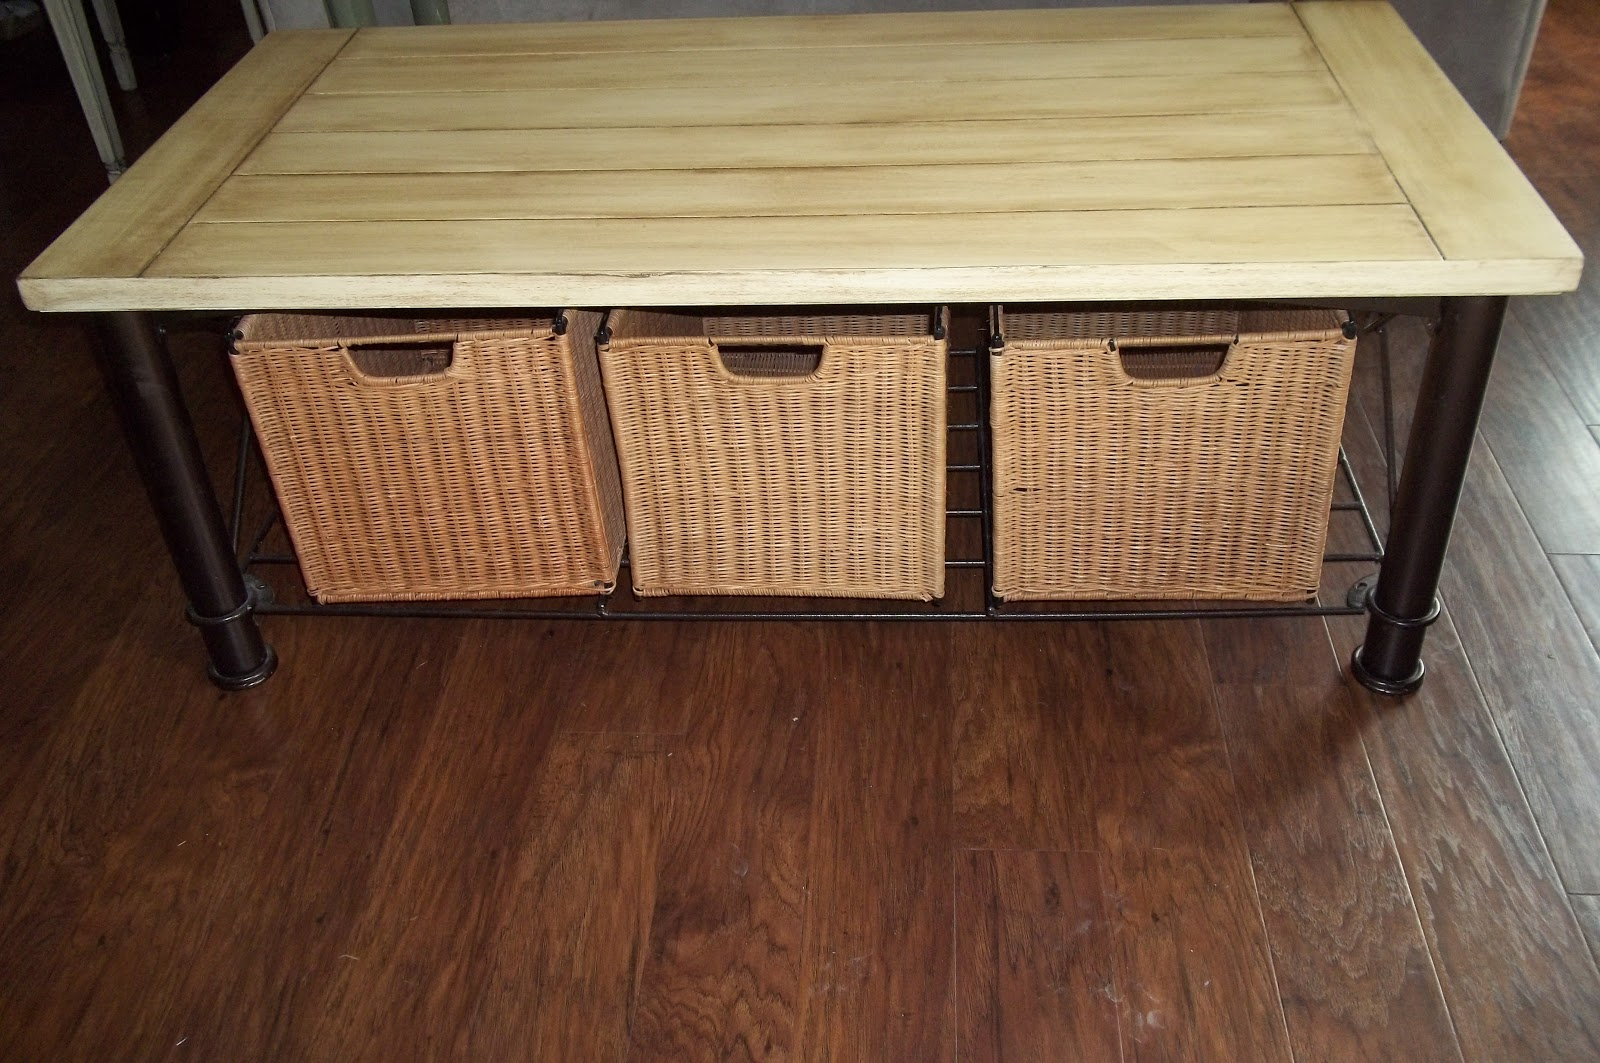 Refurbished Furniture Cream Coffee Table With Wicker Baskets